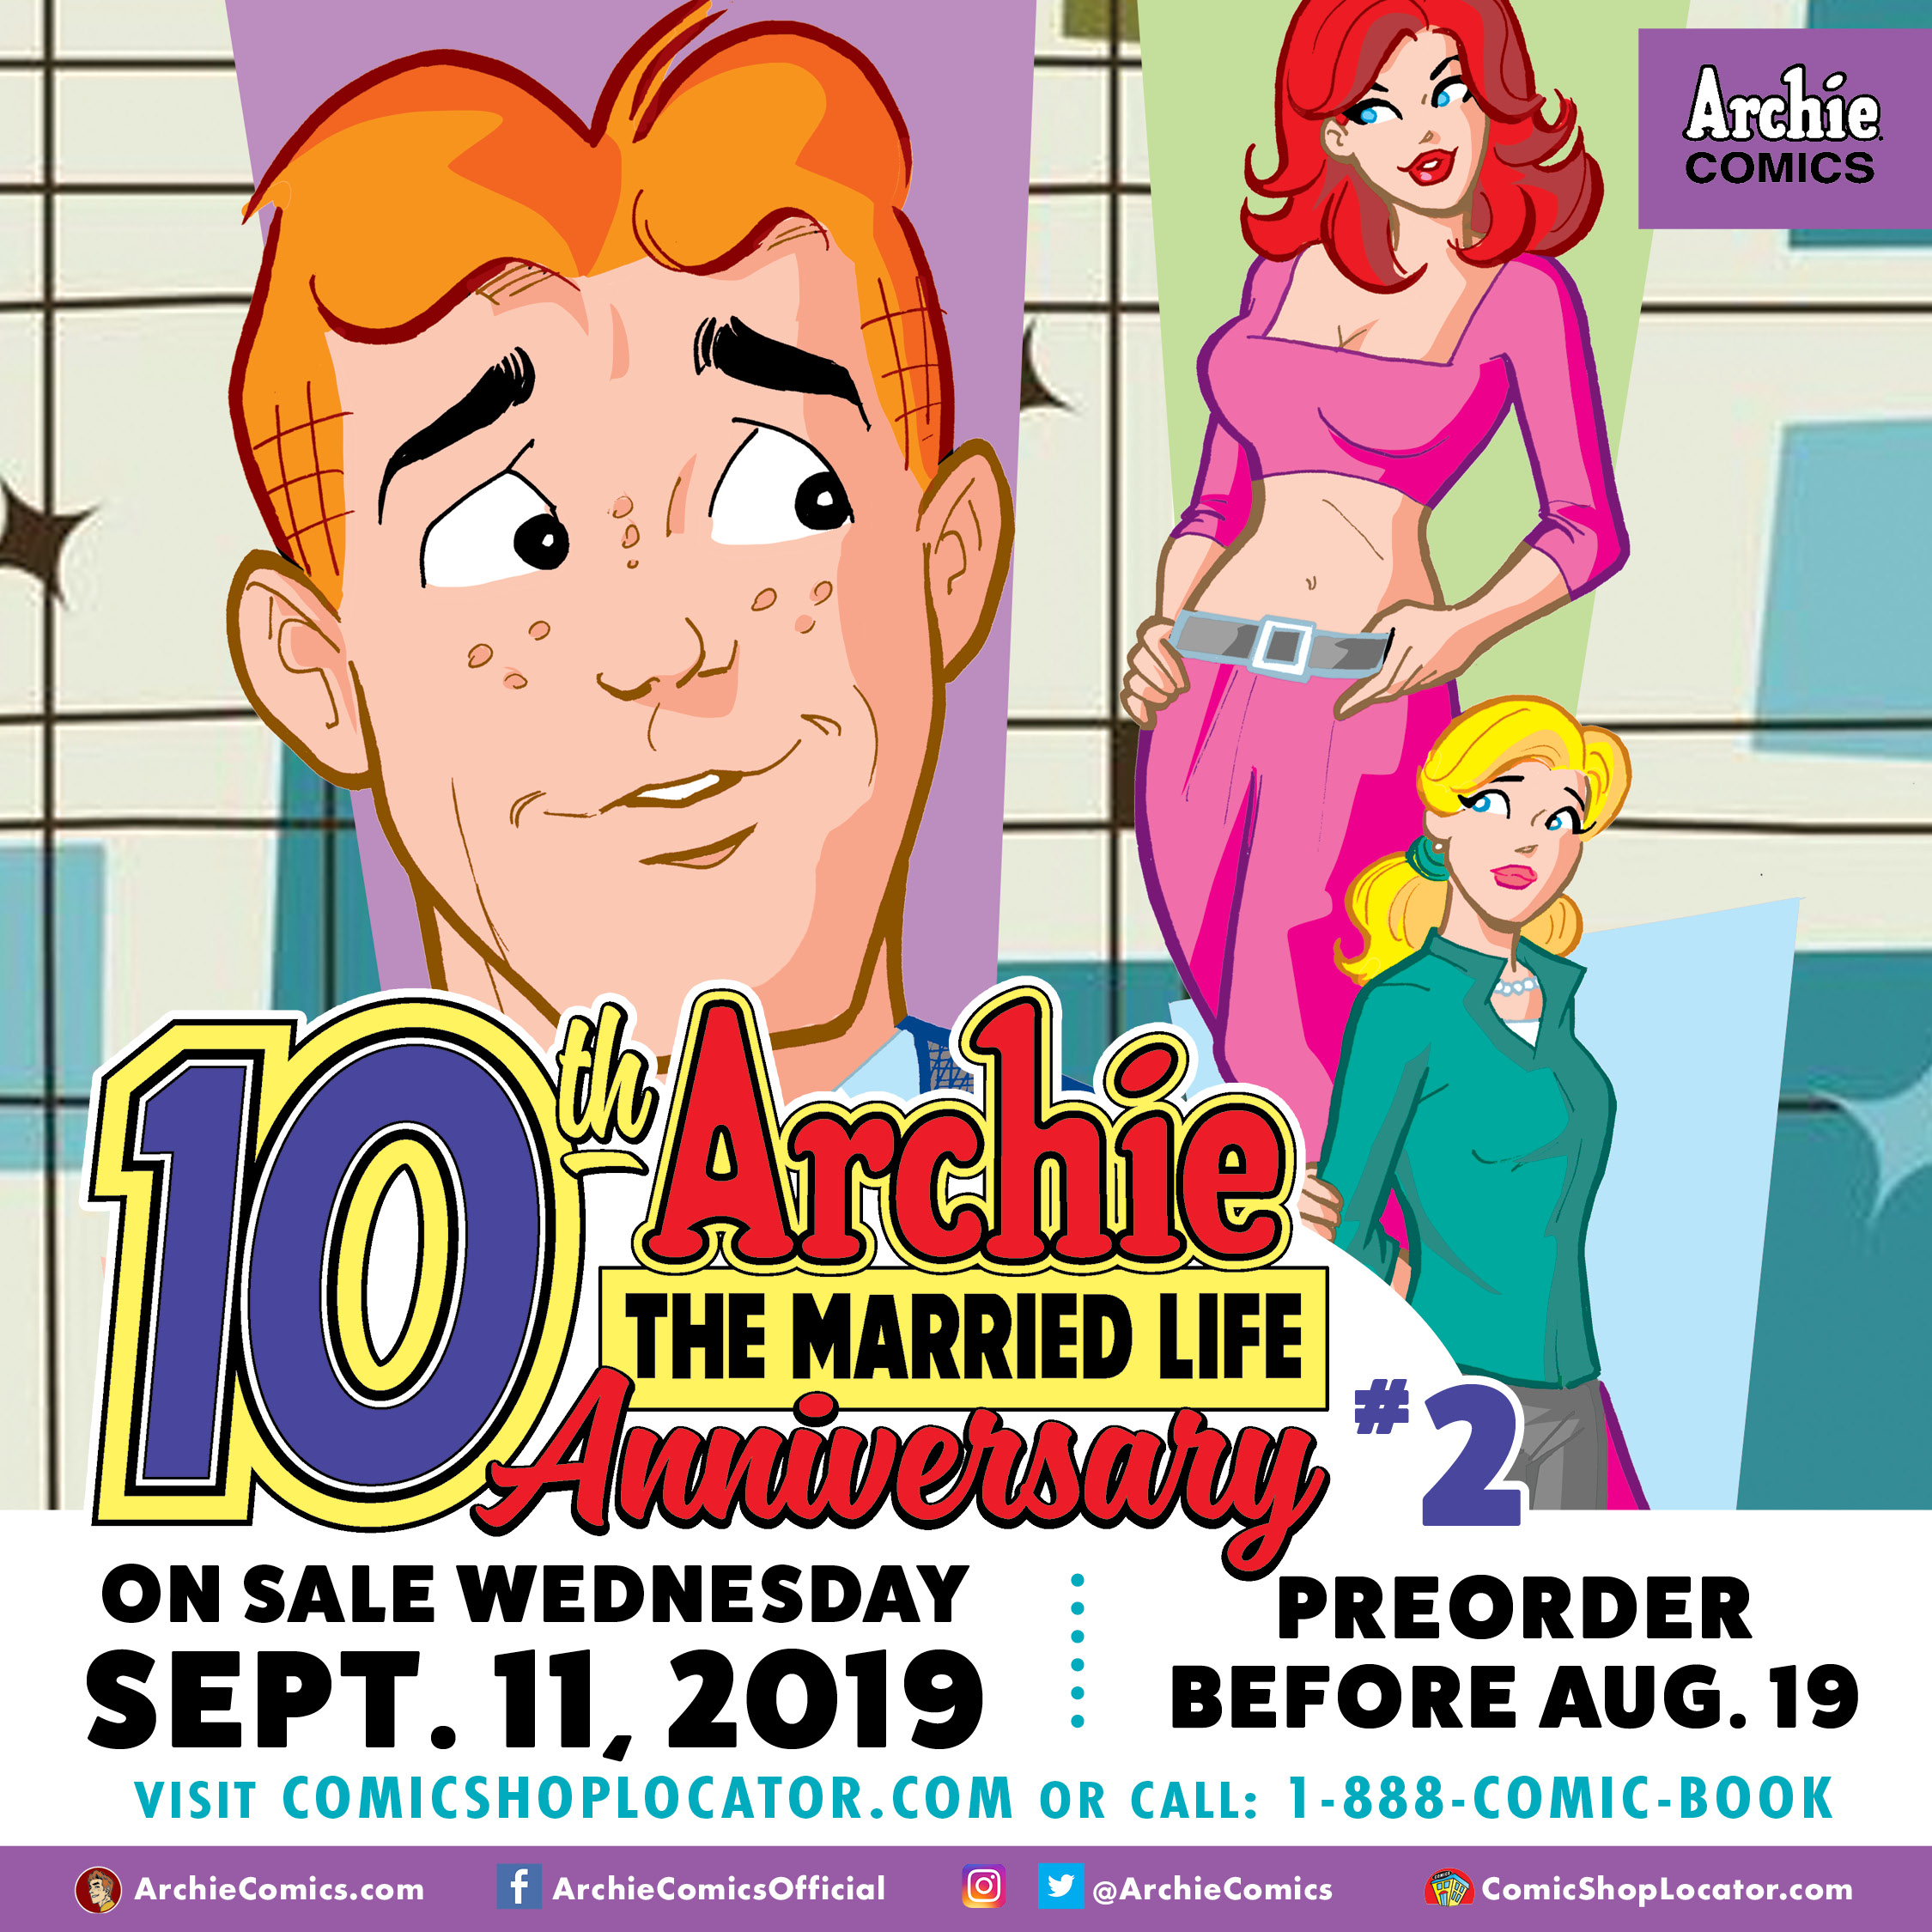 Preorder_Graphic_September_04.jpg